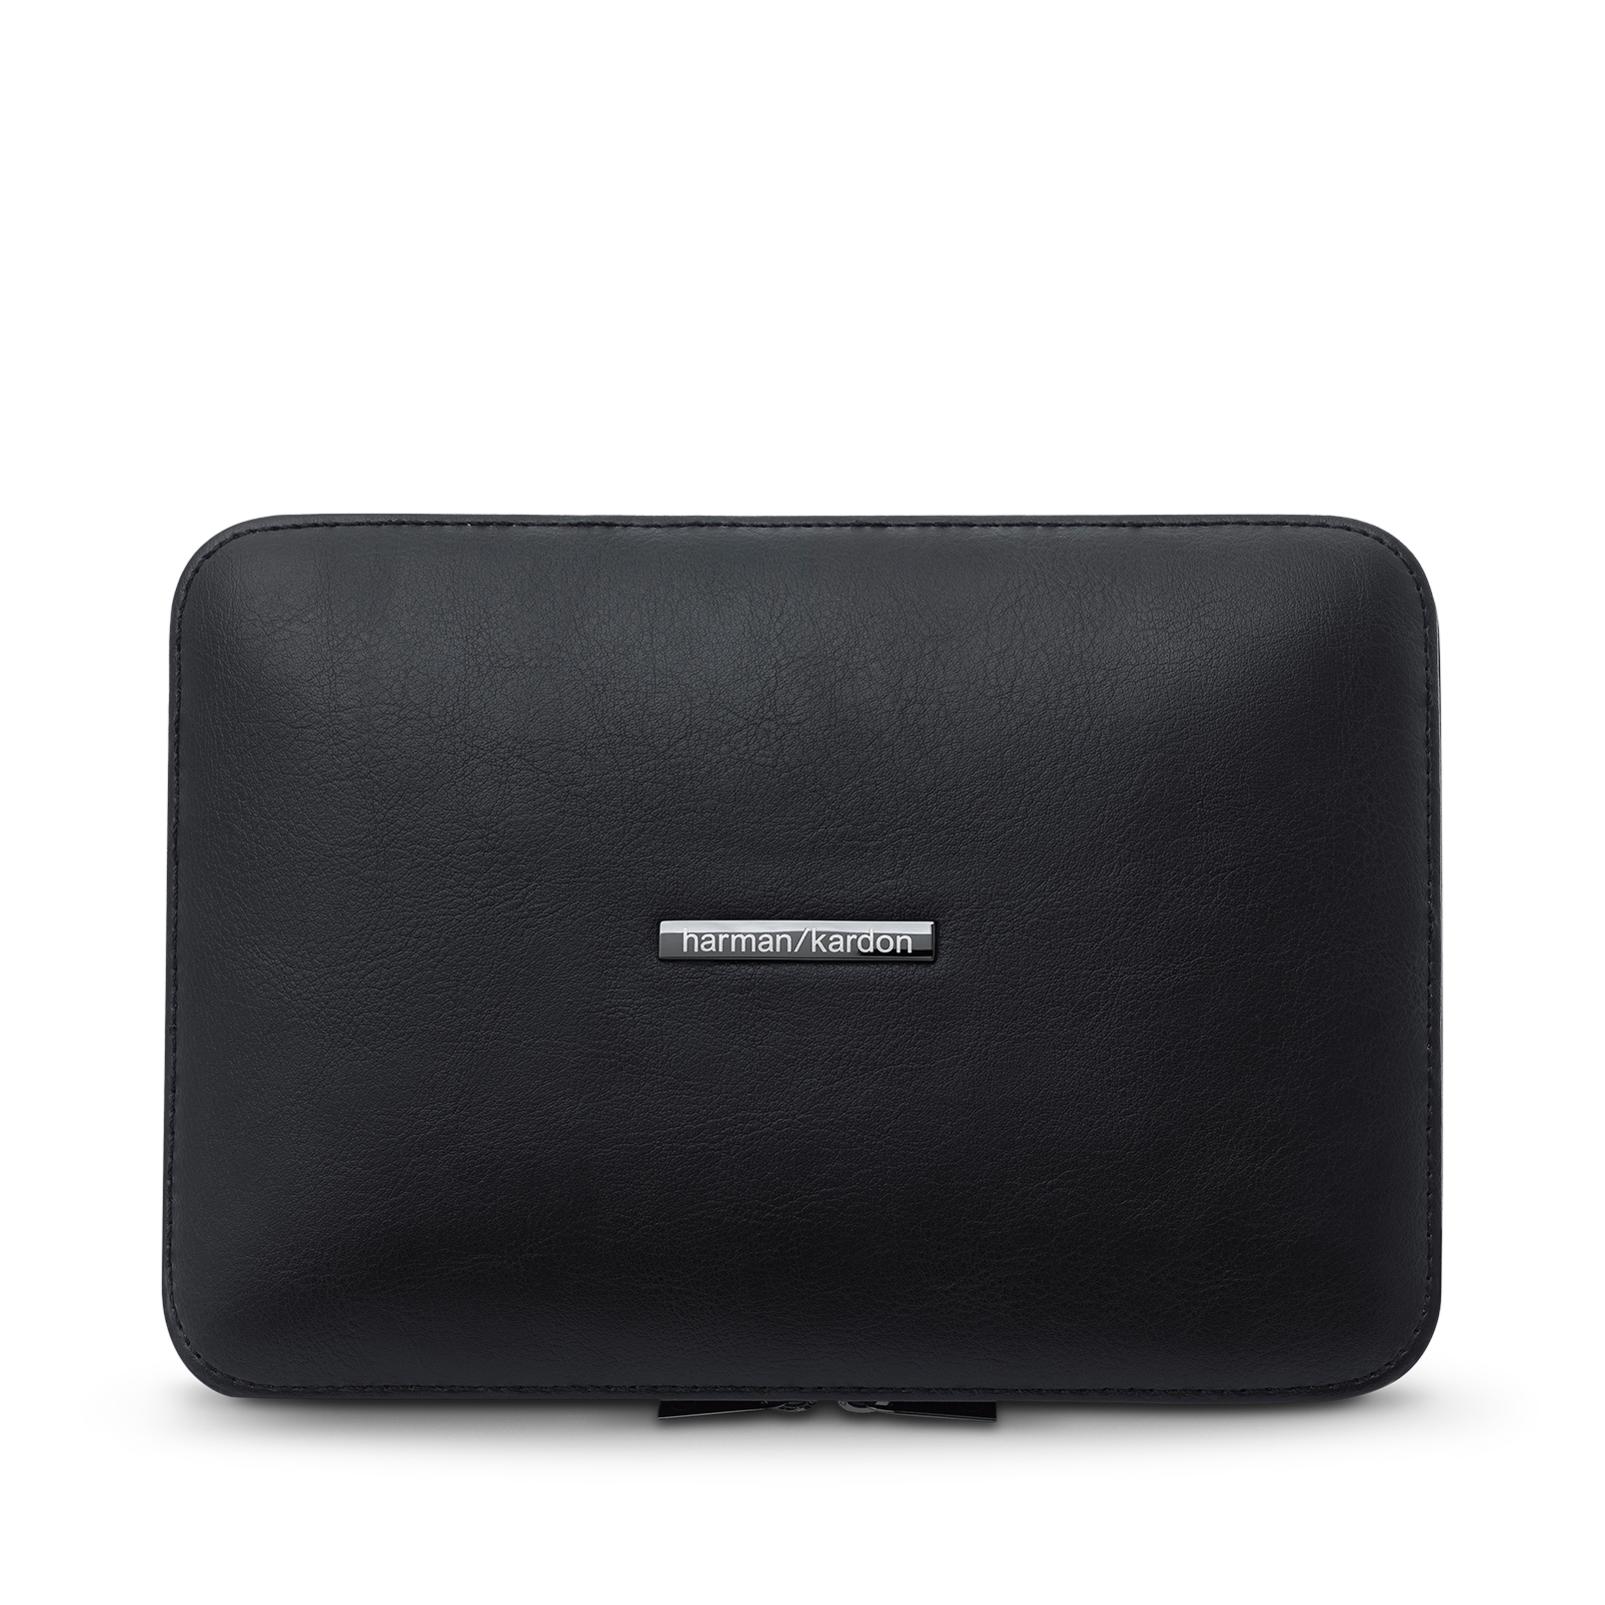 Esquire 2 Carrying Case - Black - Carrying case for Harman Kardon Esquire 2 - Front